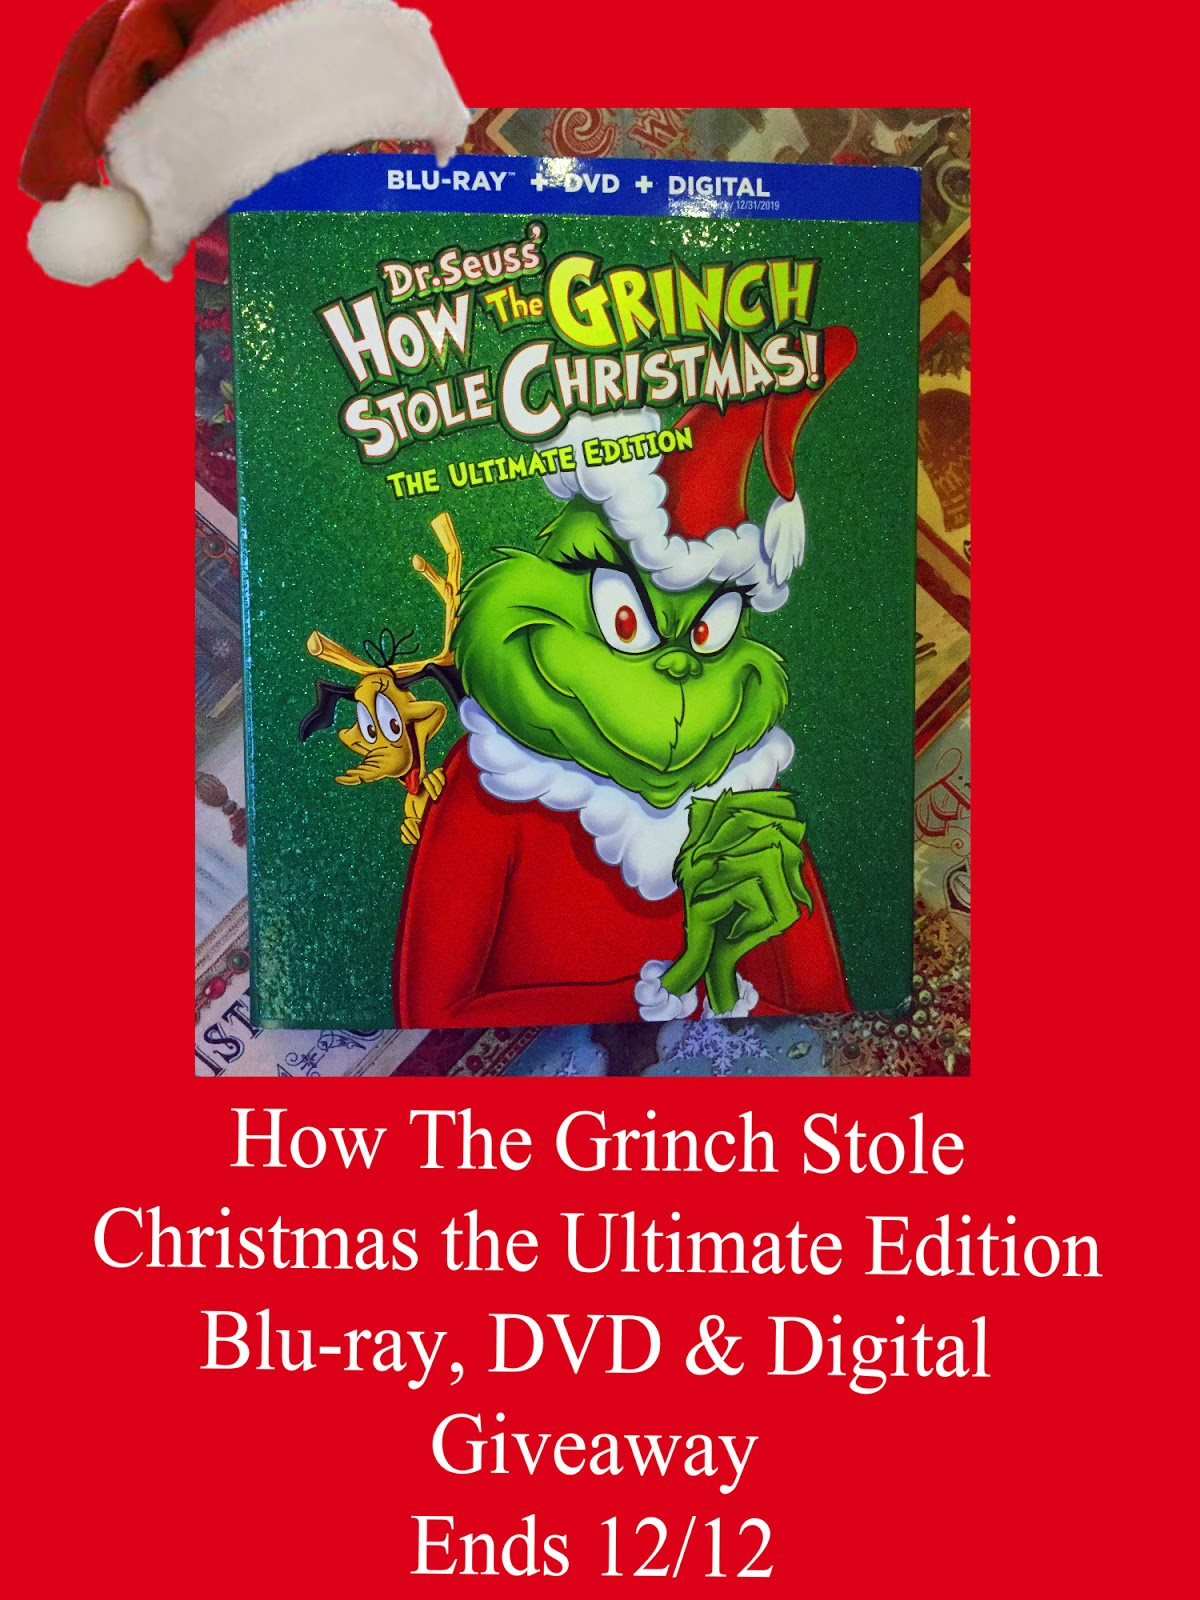 How The Grinch Stole Christmas 1966 Dvd.Maria S Space Dr Seuss How The Grinch Stole Christmas The